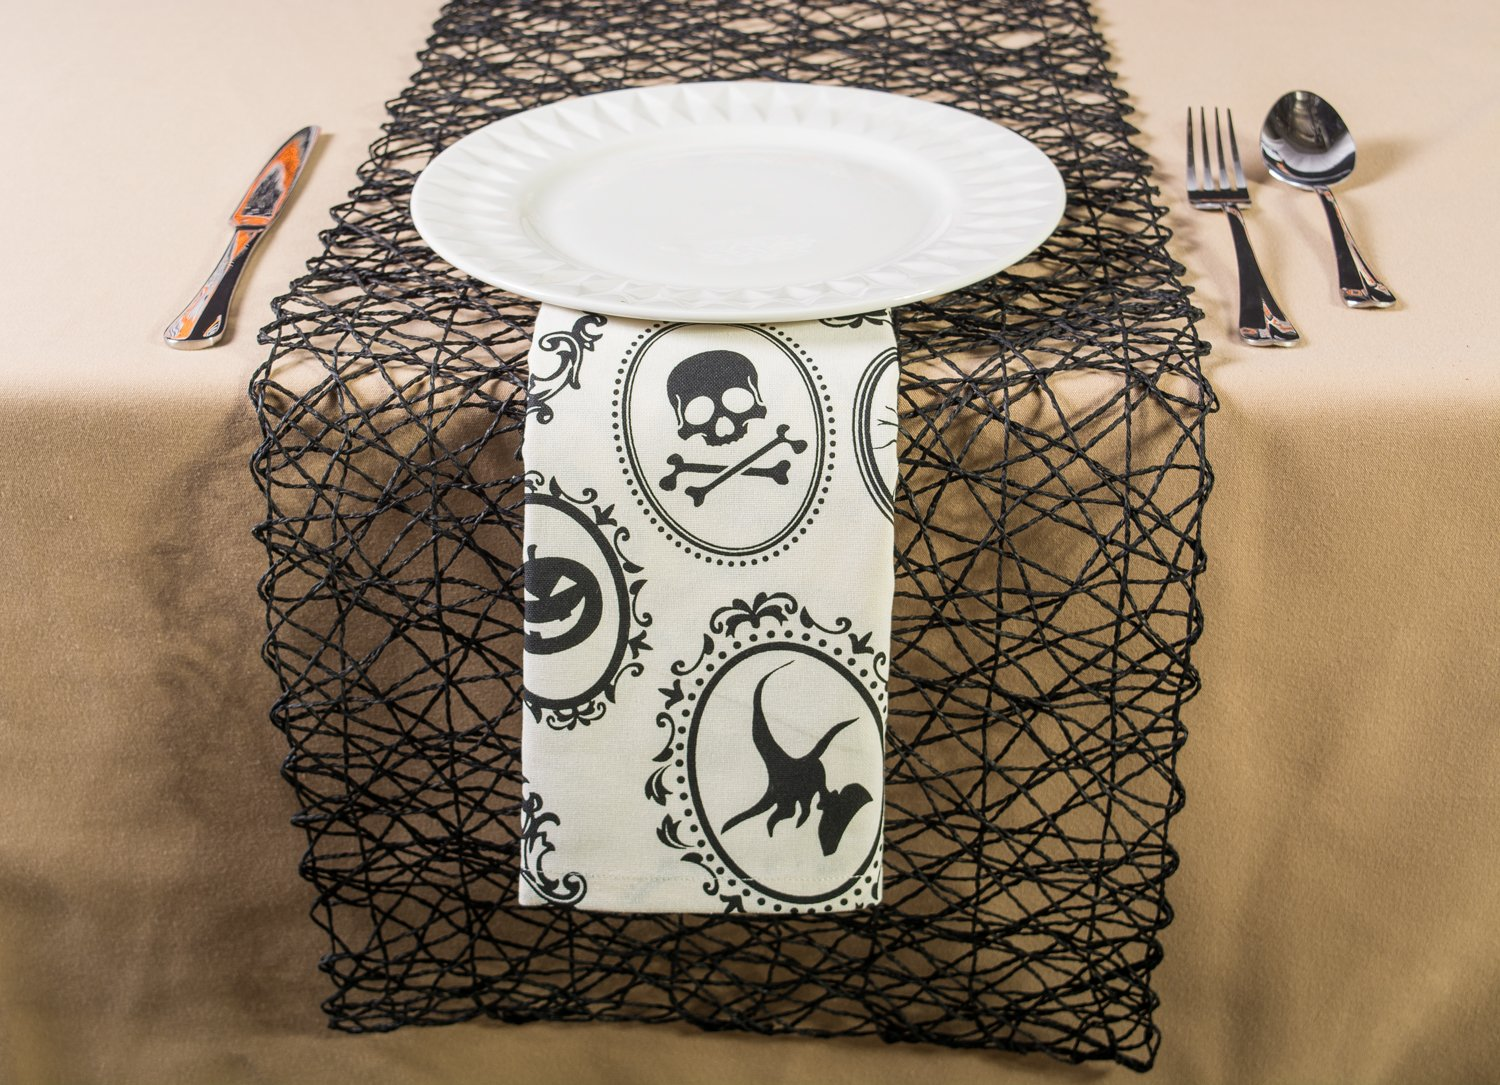 DII Oversized 20x20'' Cotton Napkin, Black & White Halloween Portrait - Perfect for Halloween, Dinner Parties and Scary Movie Nights by DII (Image #11)